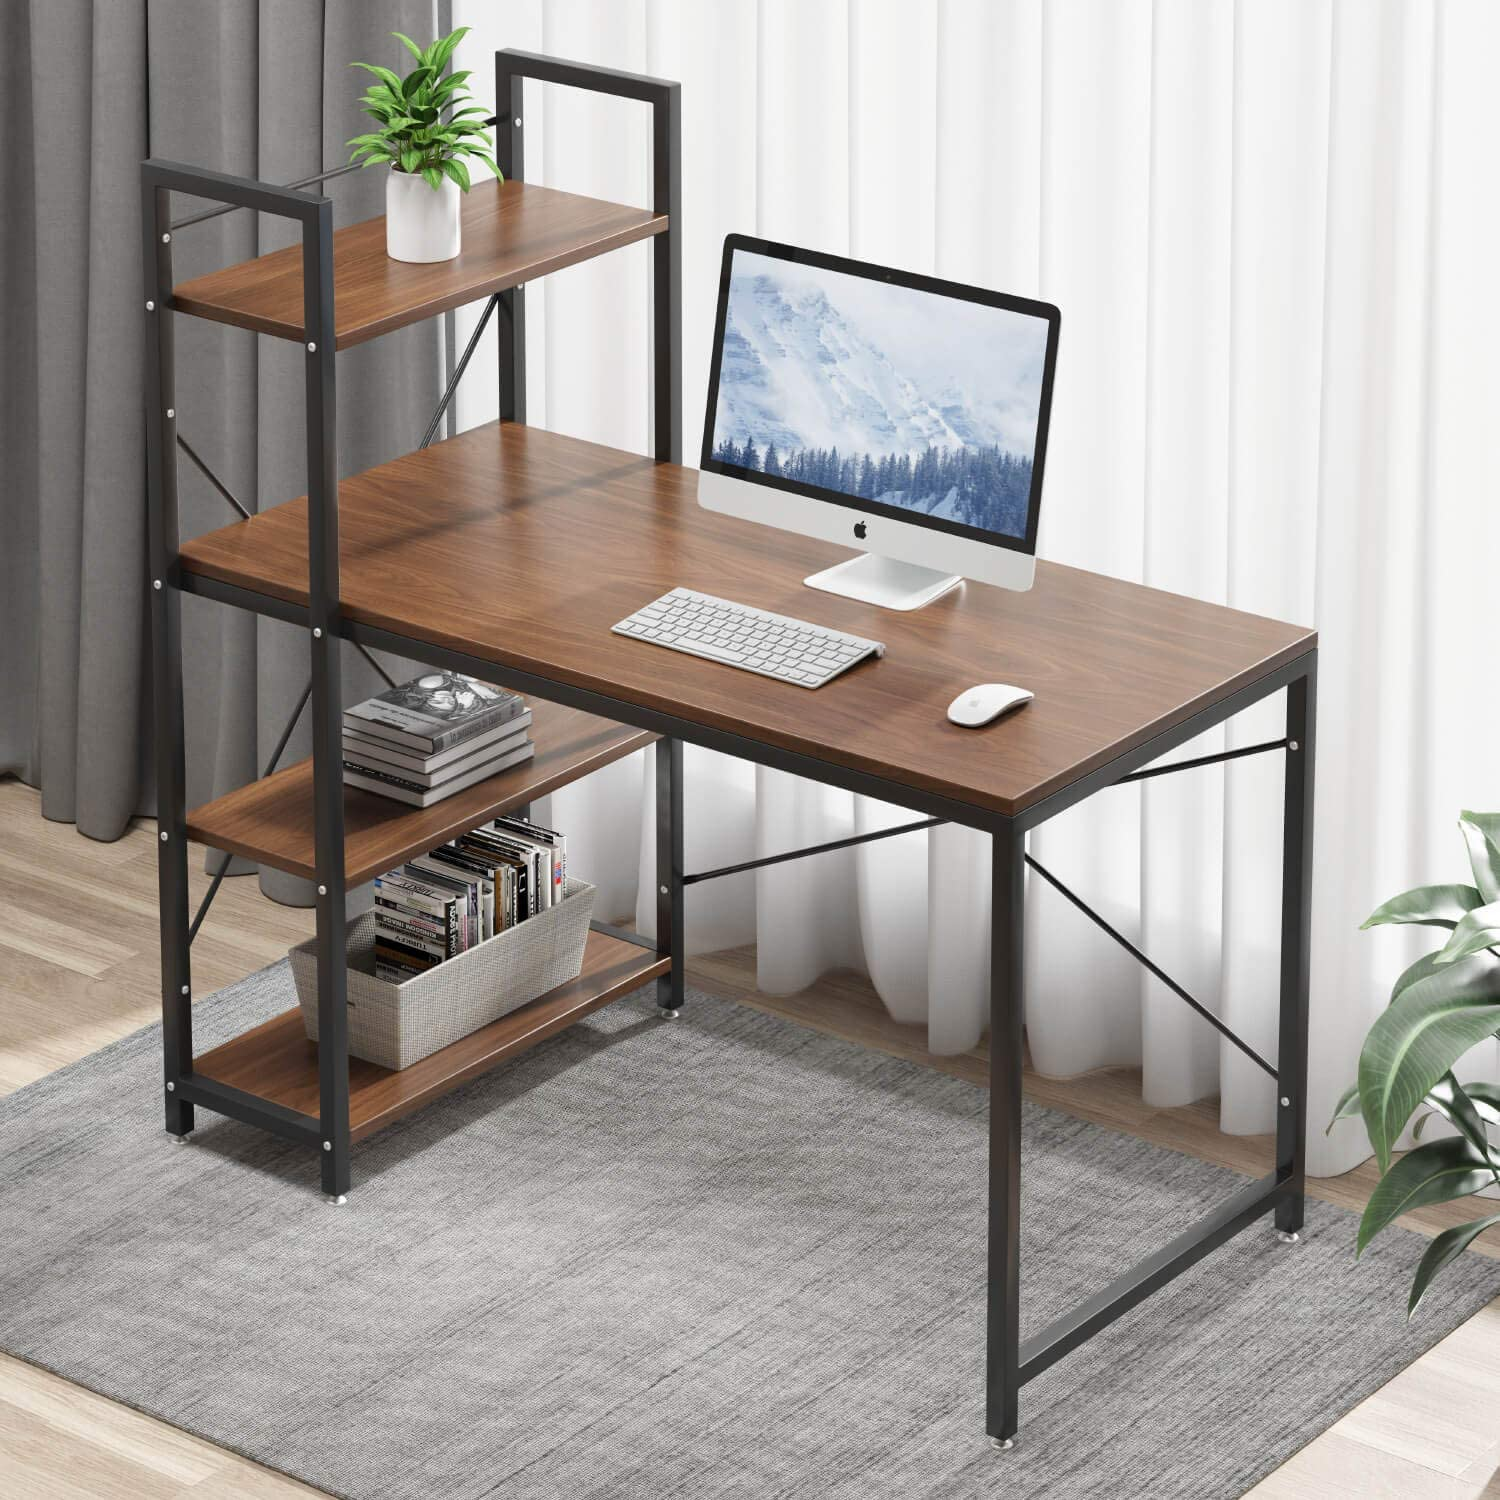 Tower Computer Desk with 8 Tire Shelves - 87.8 inch Writing Study Table  with Bookshelves Study Desk Modern Steel Frame Compact Wood Desk Home  Office